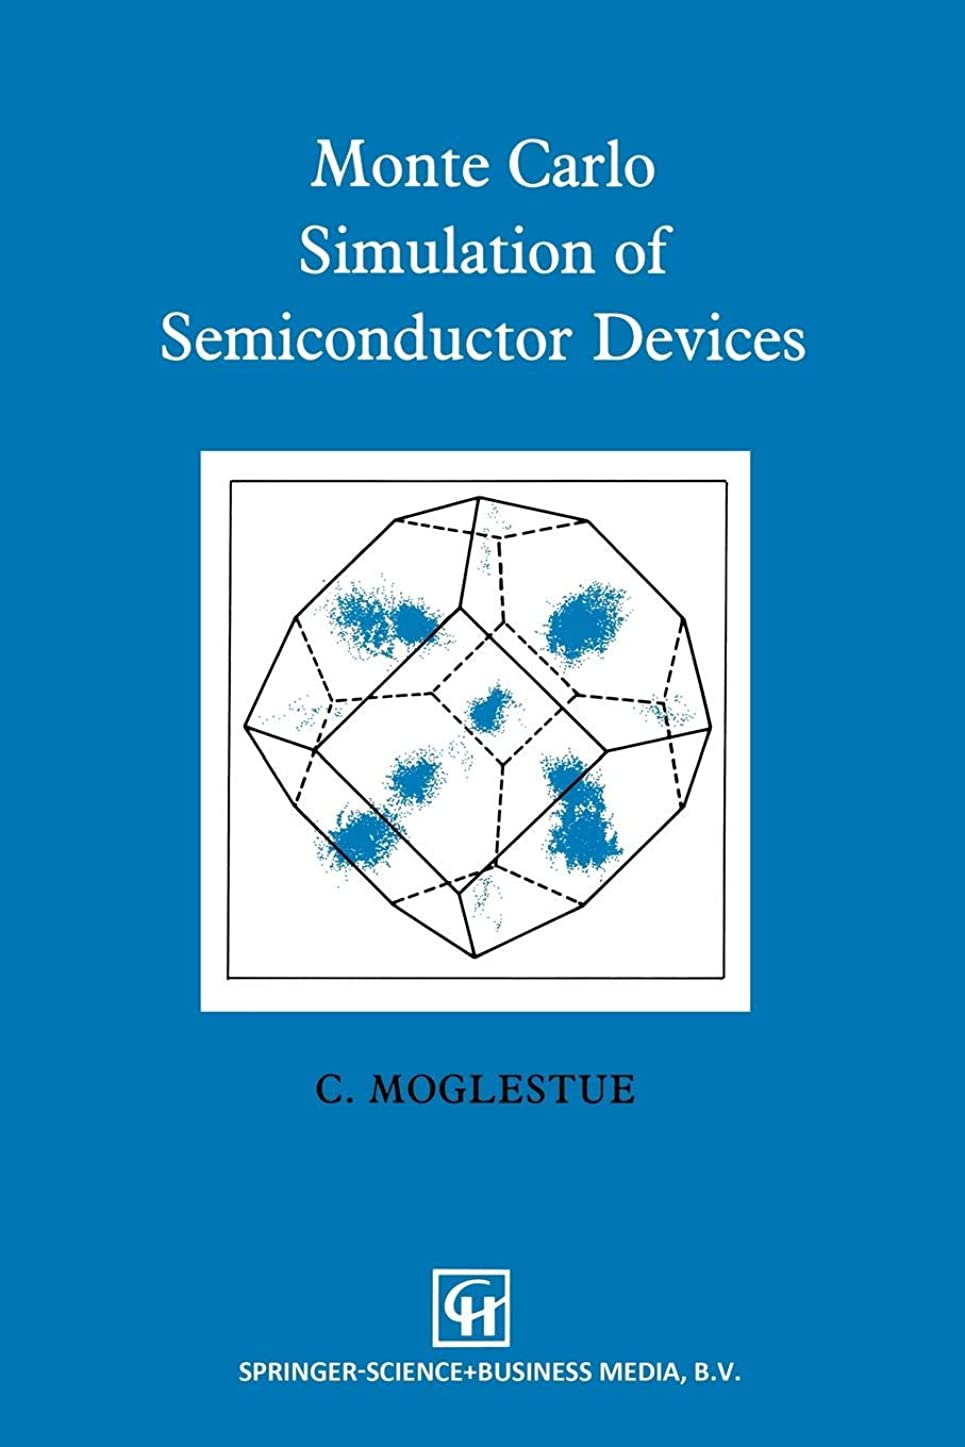 フィット言う解明するMonte Carlo Simulation of Semiconductor Devices